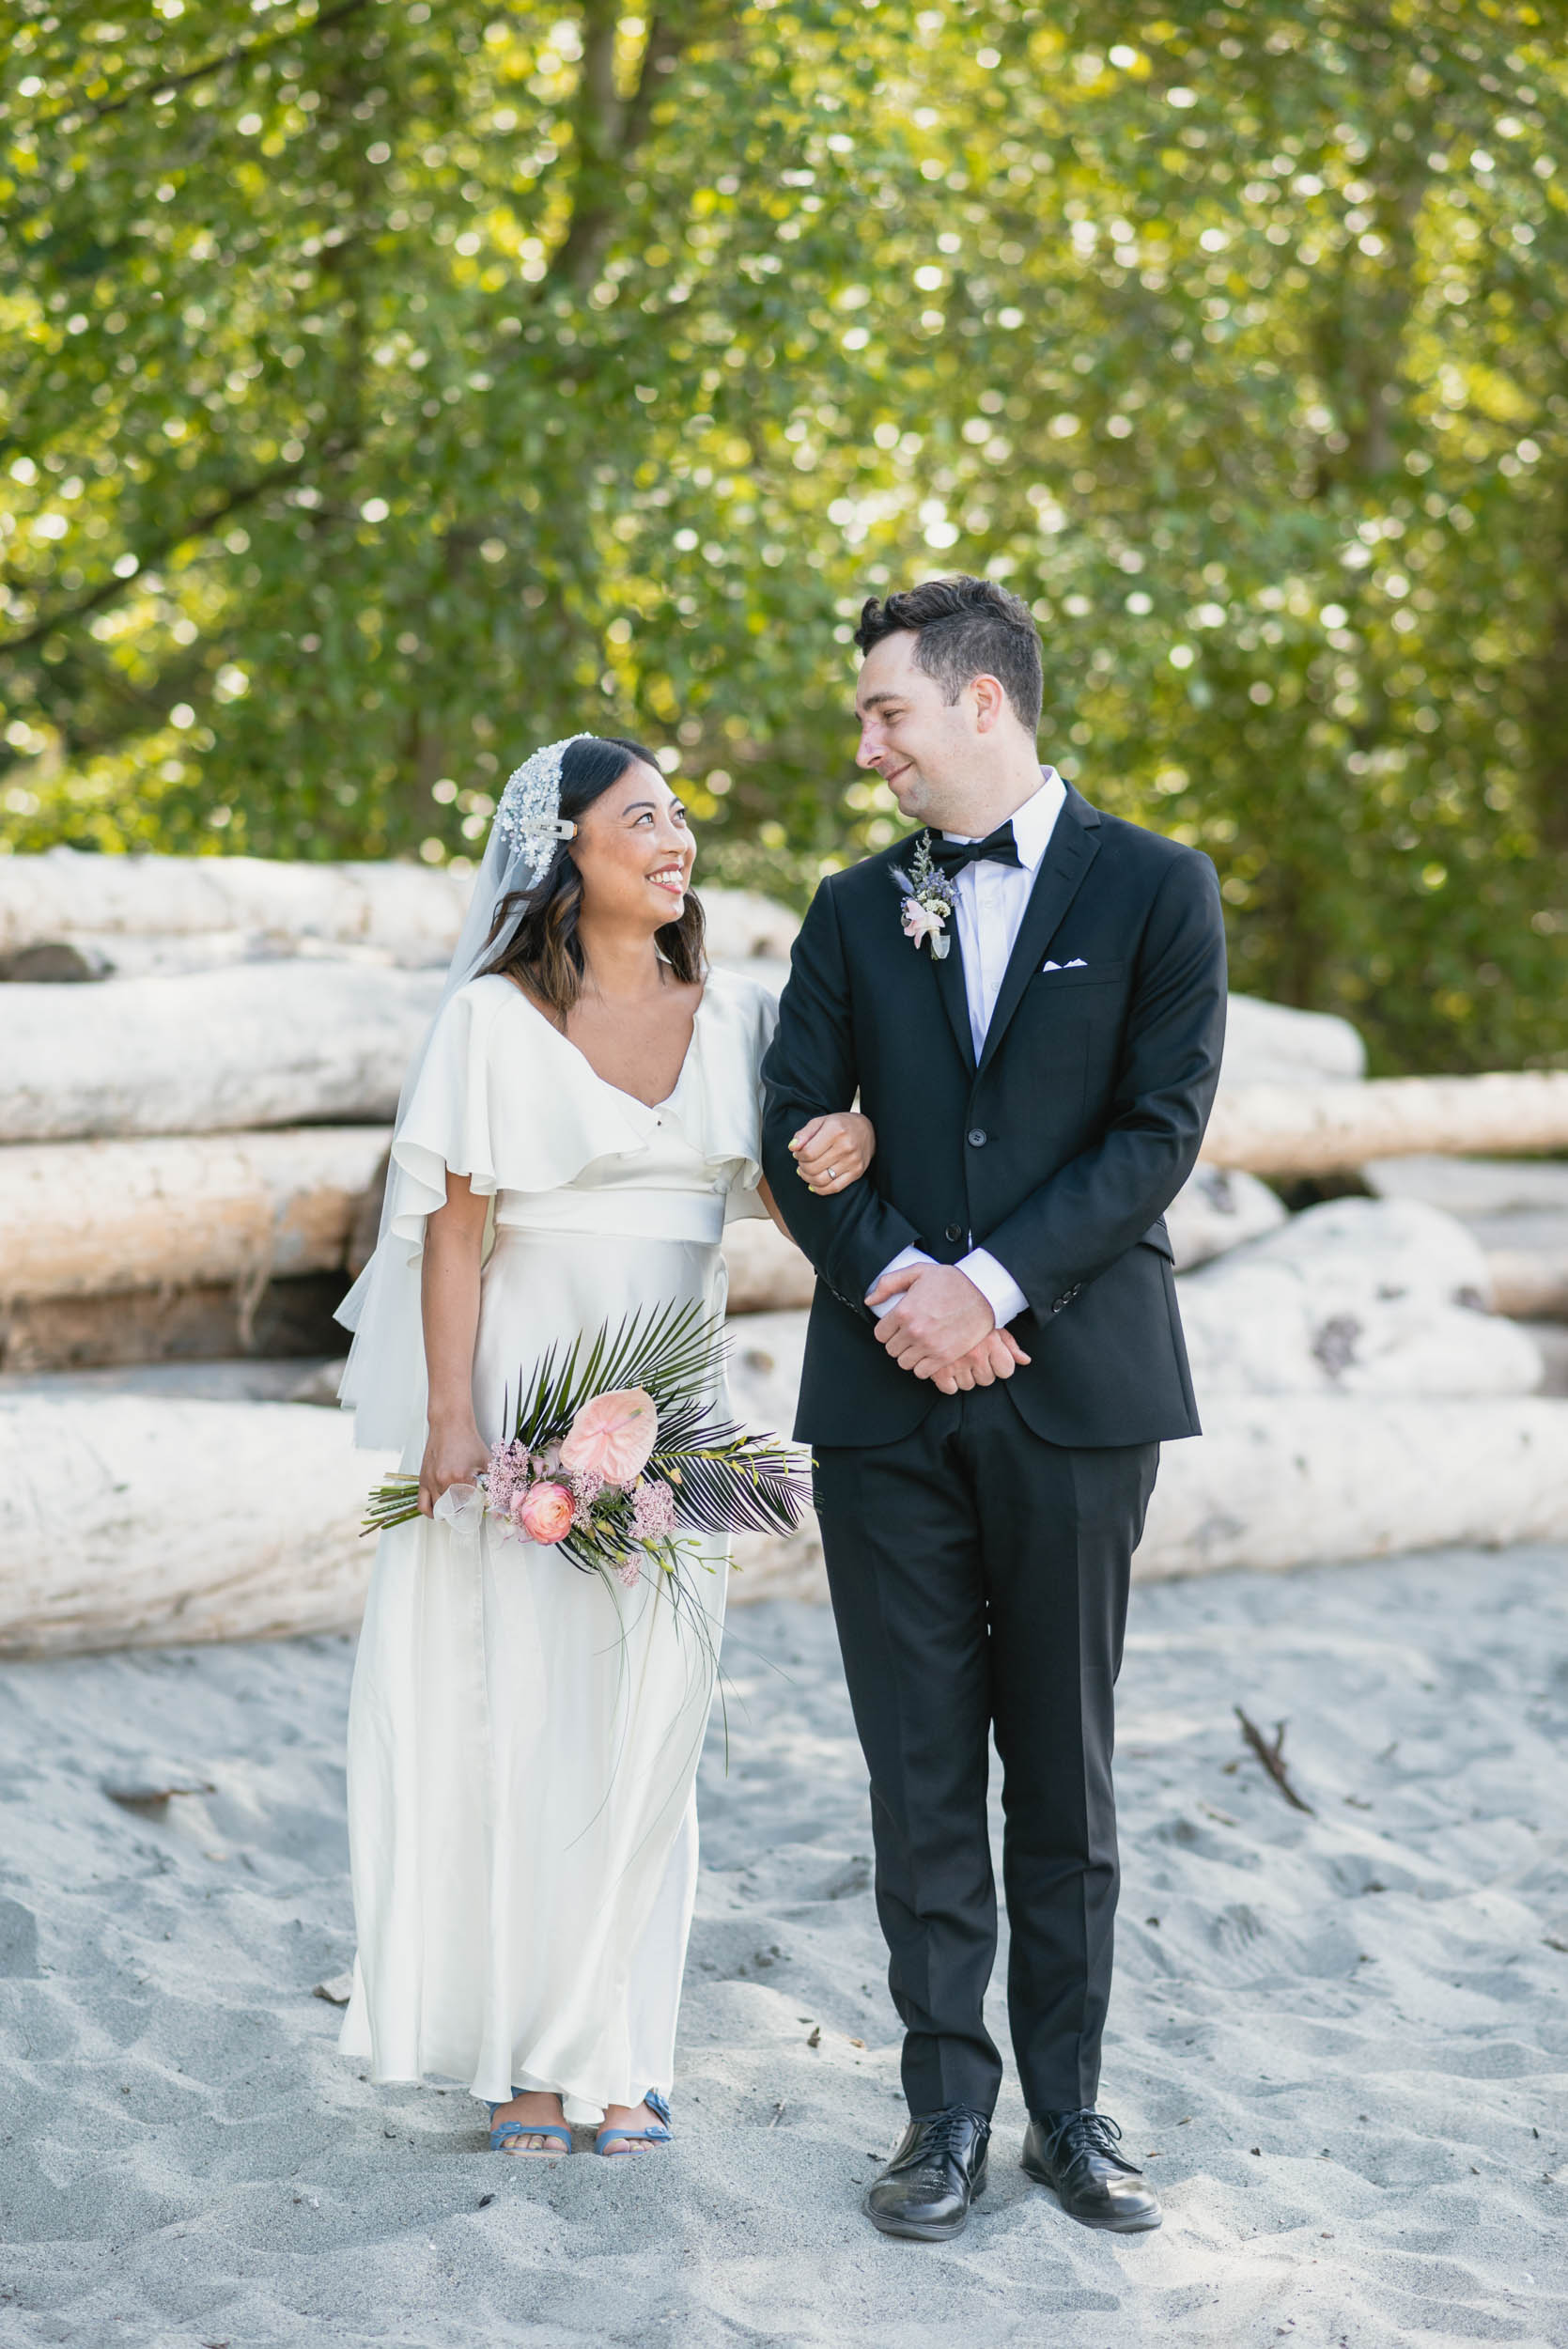 Bride and Groom together at beach